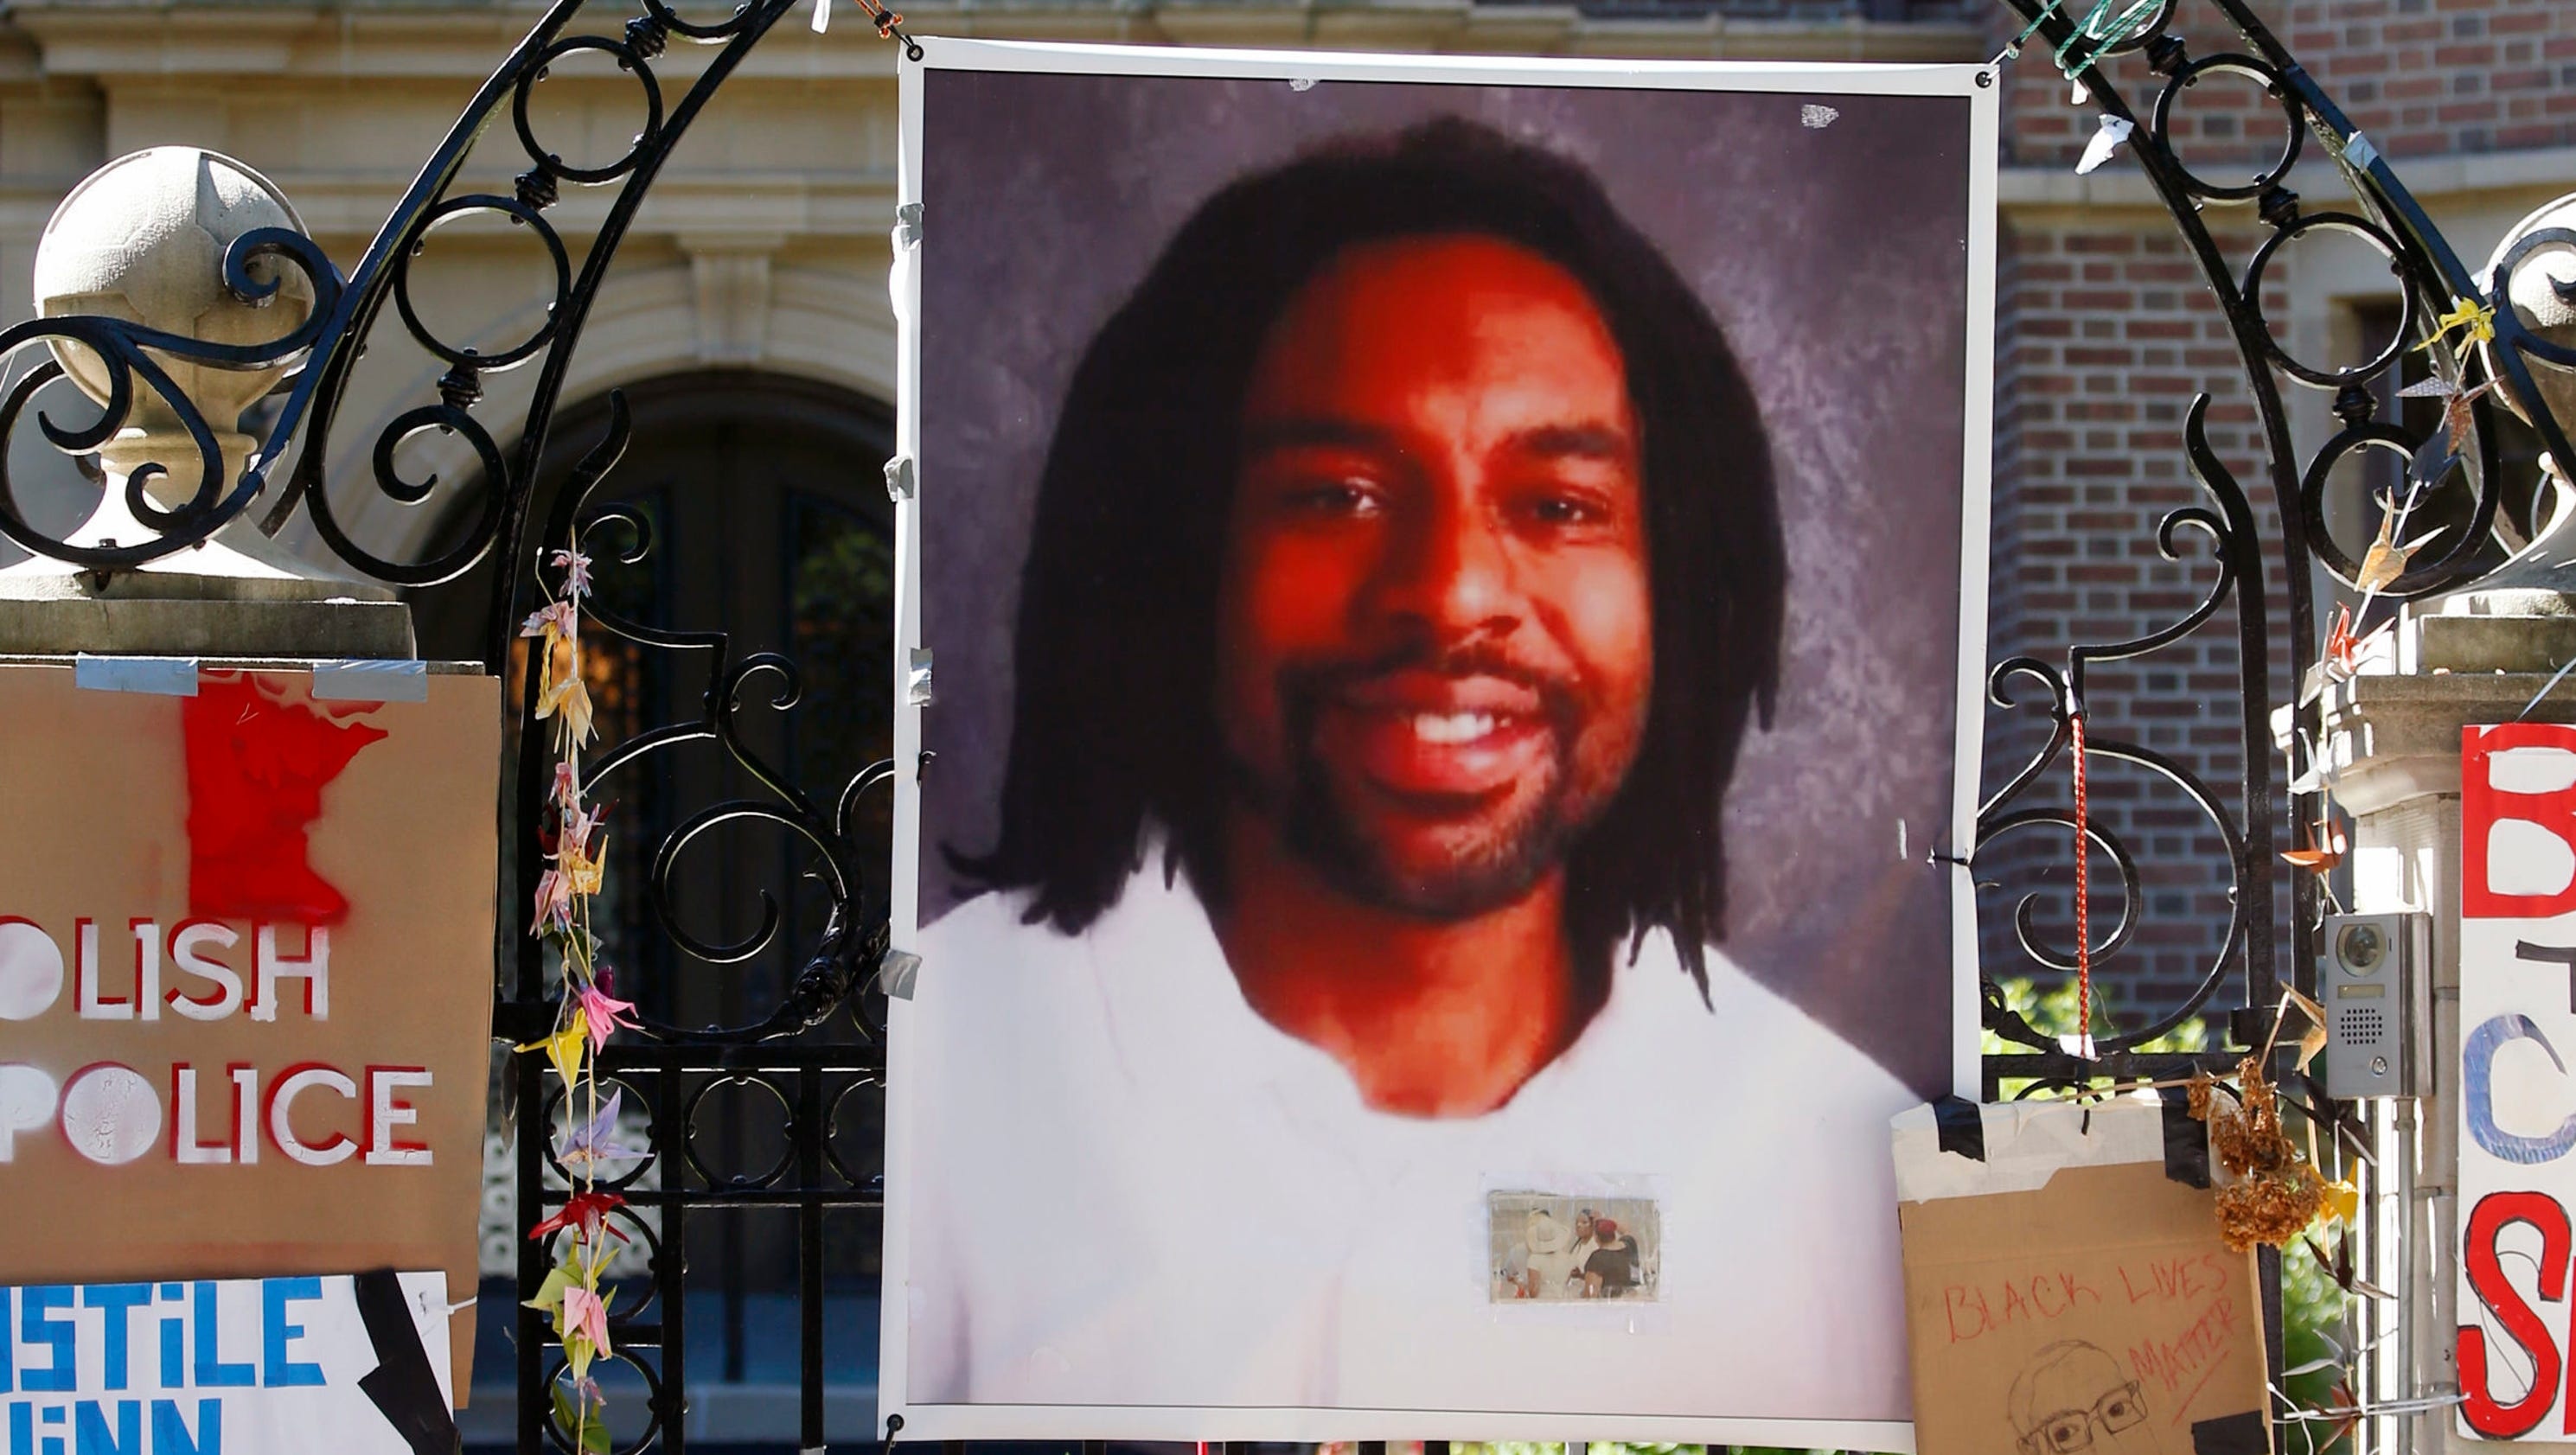 Philando Castile trial: Officer says motorist had hand on gun when shot